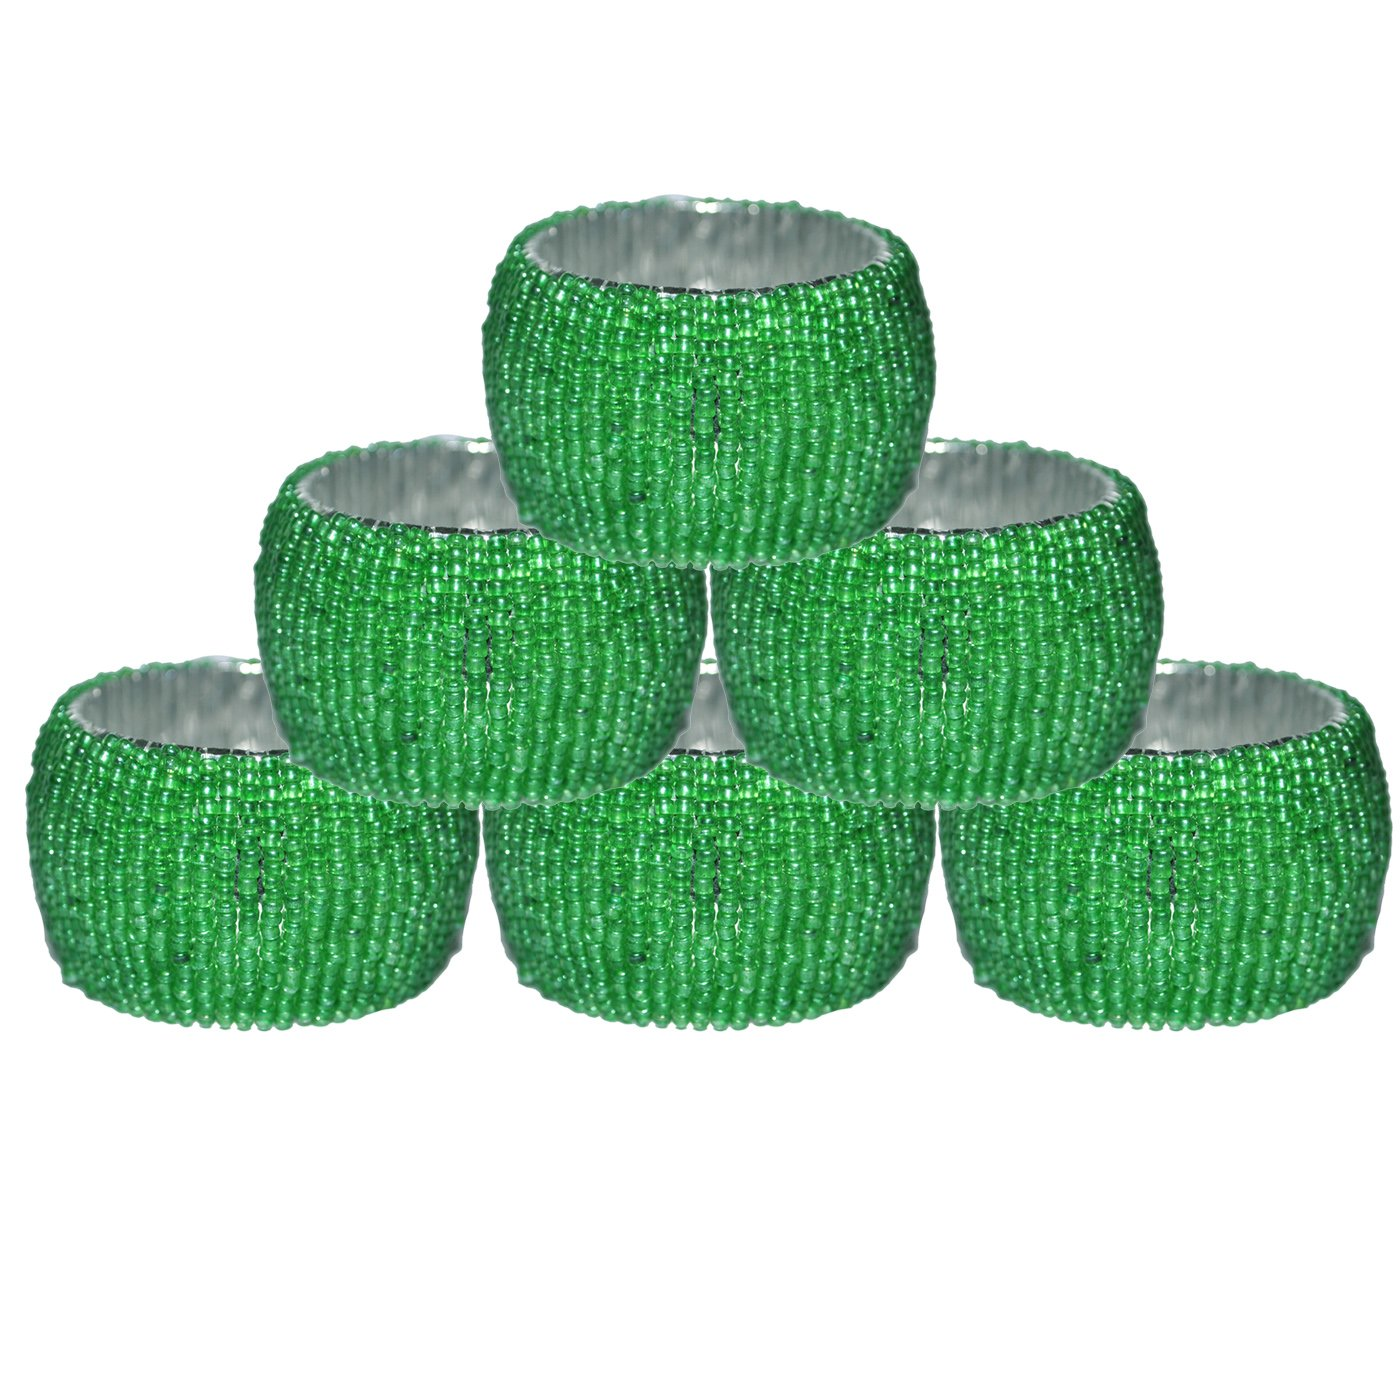 DakshCraft Light Green Beaded Napkin Rings - Set of 6, Table Accessories Item & Perfect for Dining Decor - Dia - 1.5 inches